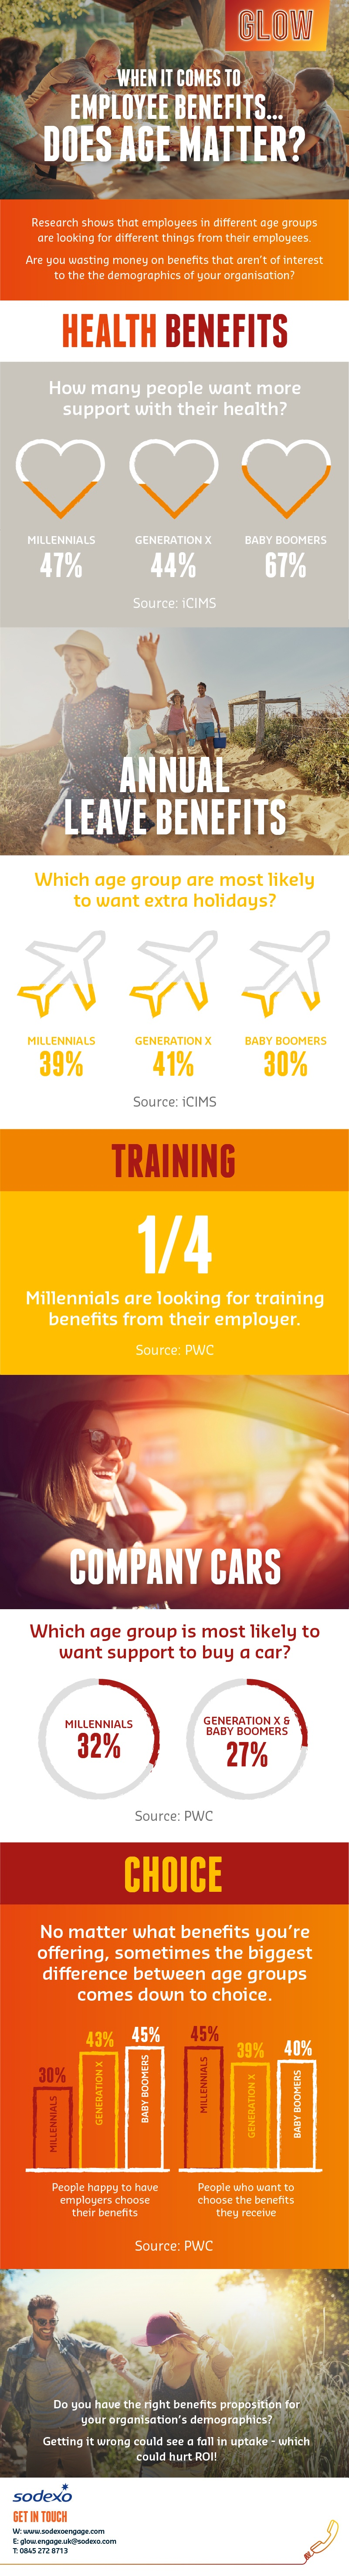 GLOW-When-it-Comes-to-Employee-Benefits-Does-Age-Matter.jpg